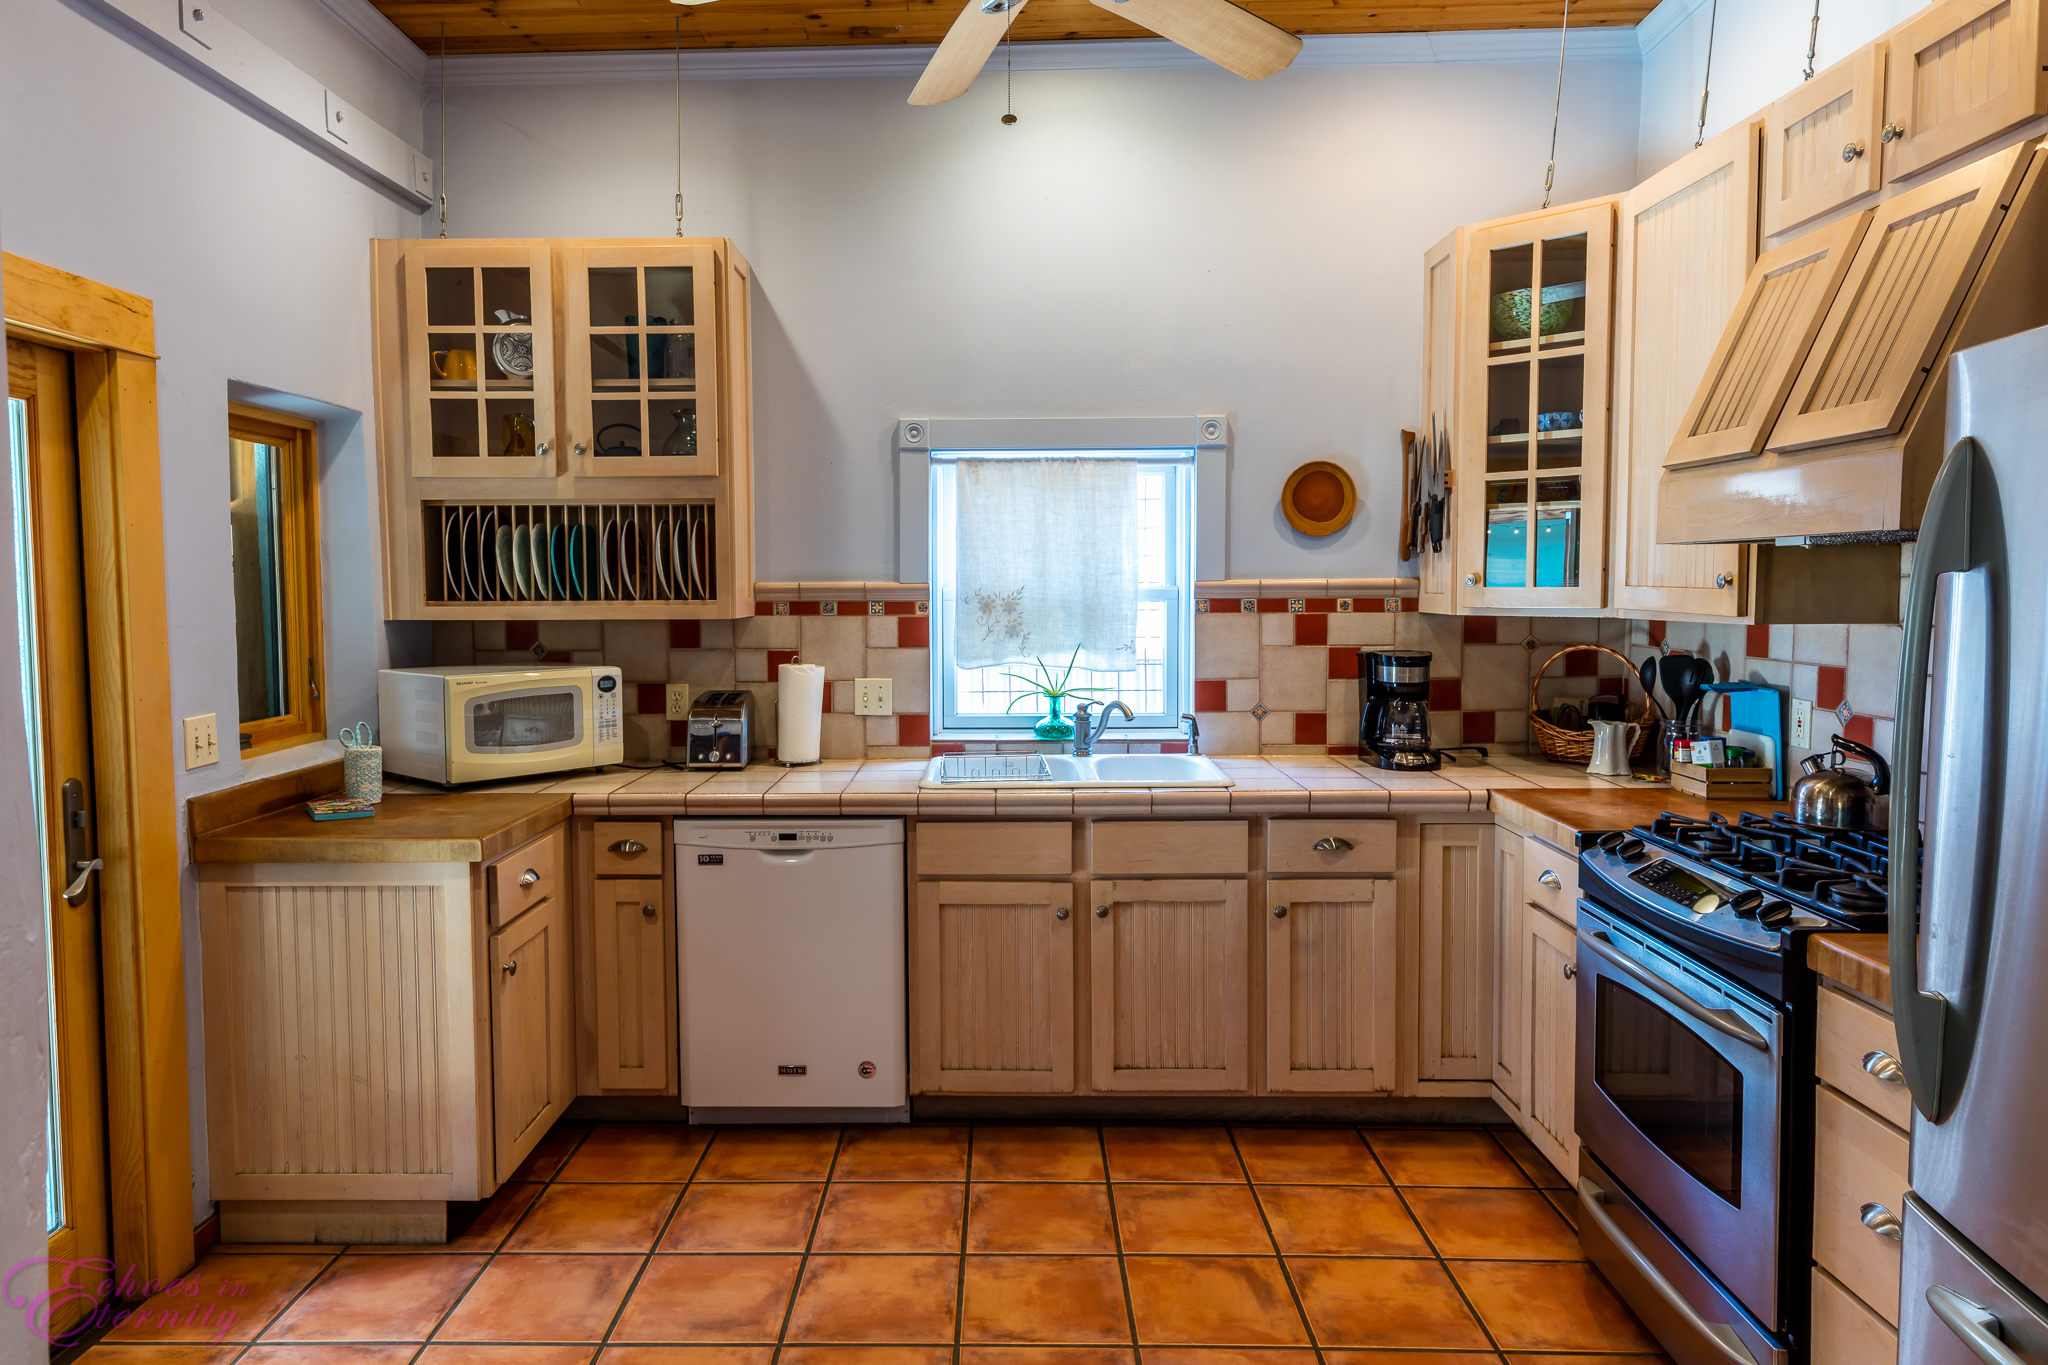 Professional Photos Tucson Arizona Rental Real Estate Photography Airbnb VRBO 06.jpg